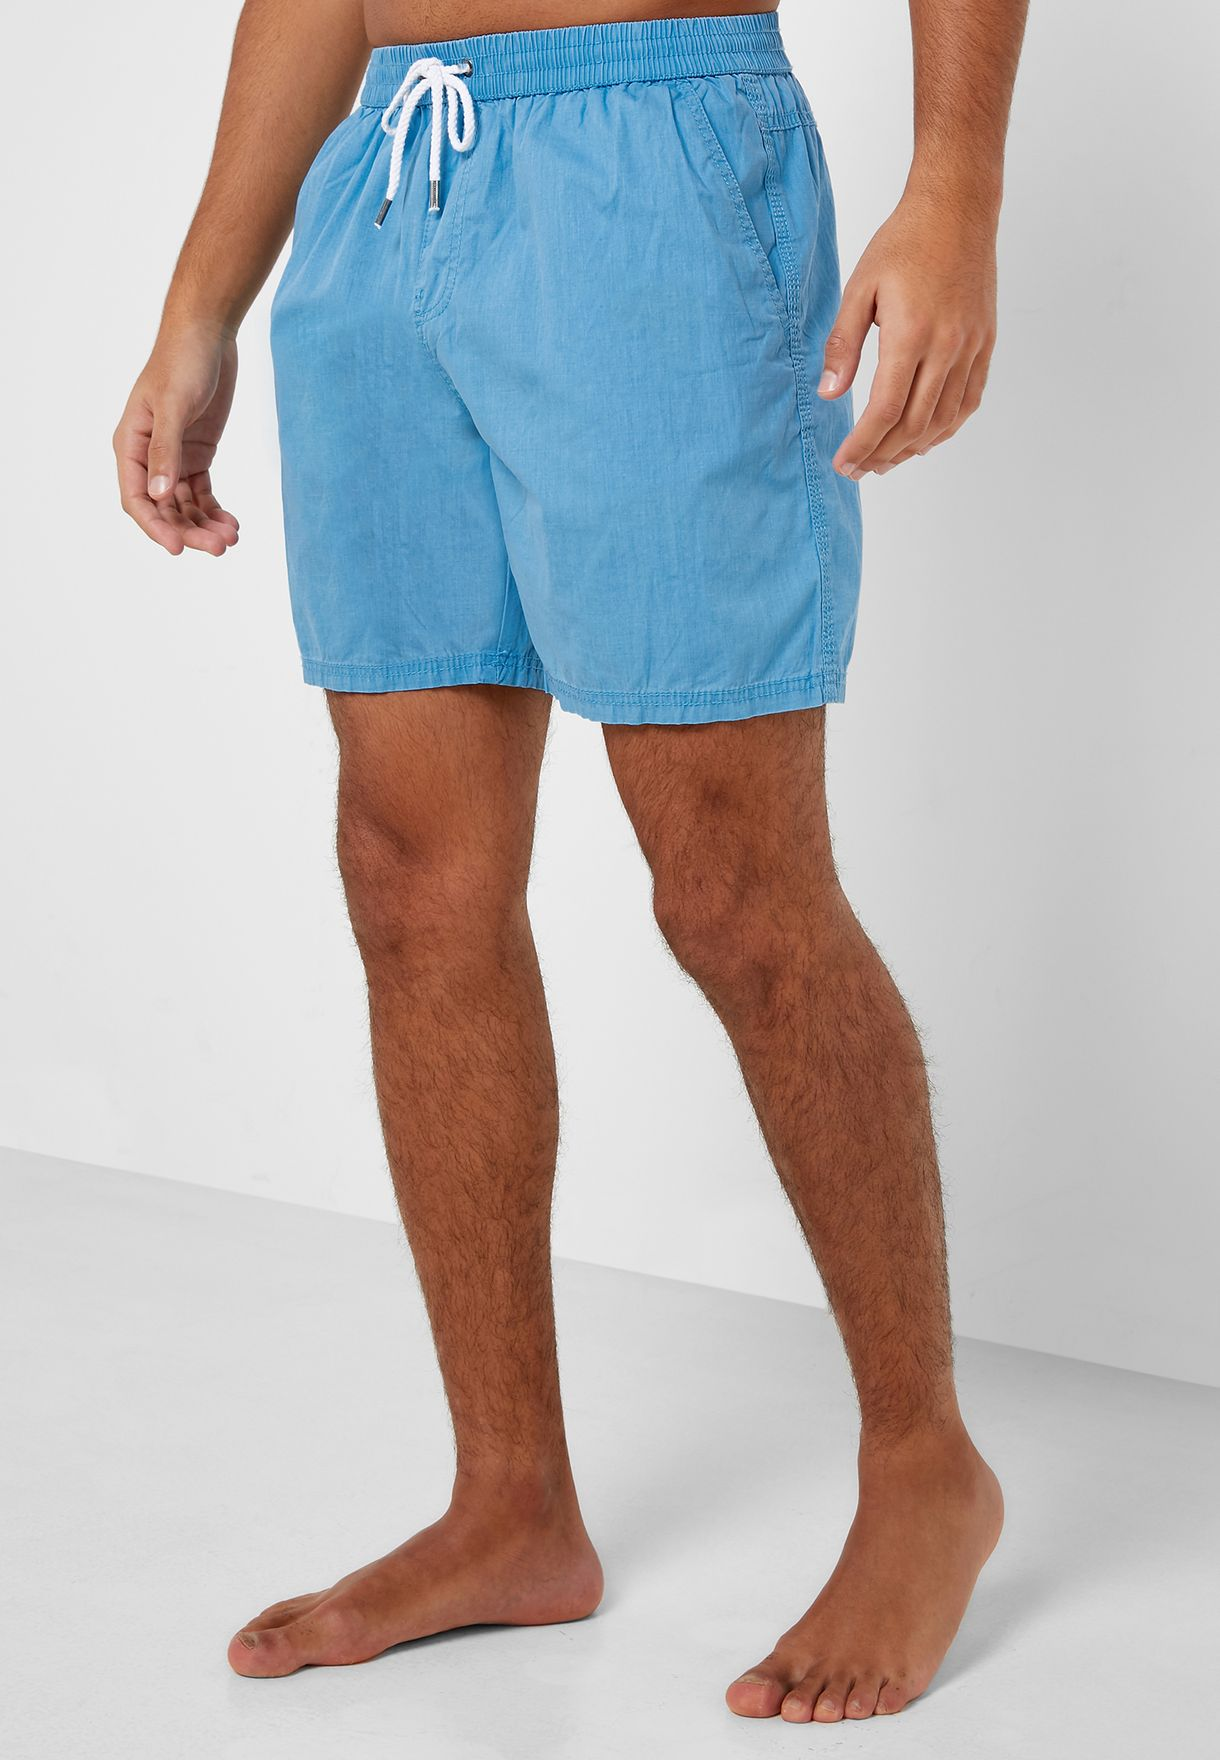 Hoff Drawstring Shorts